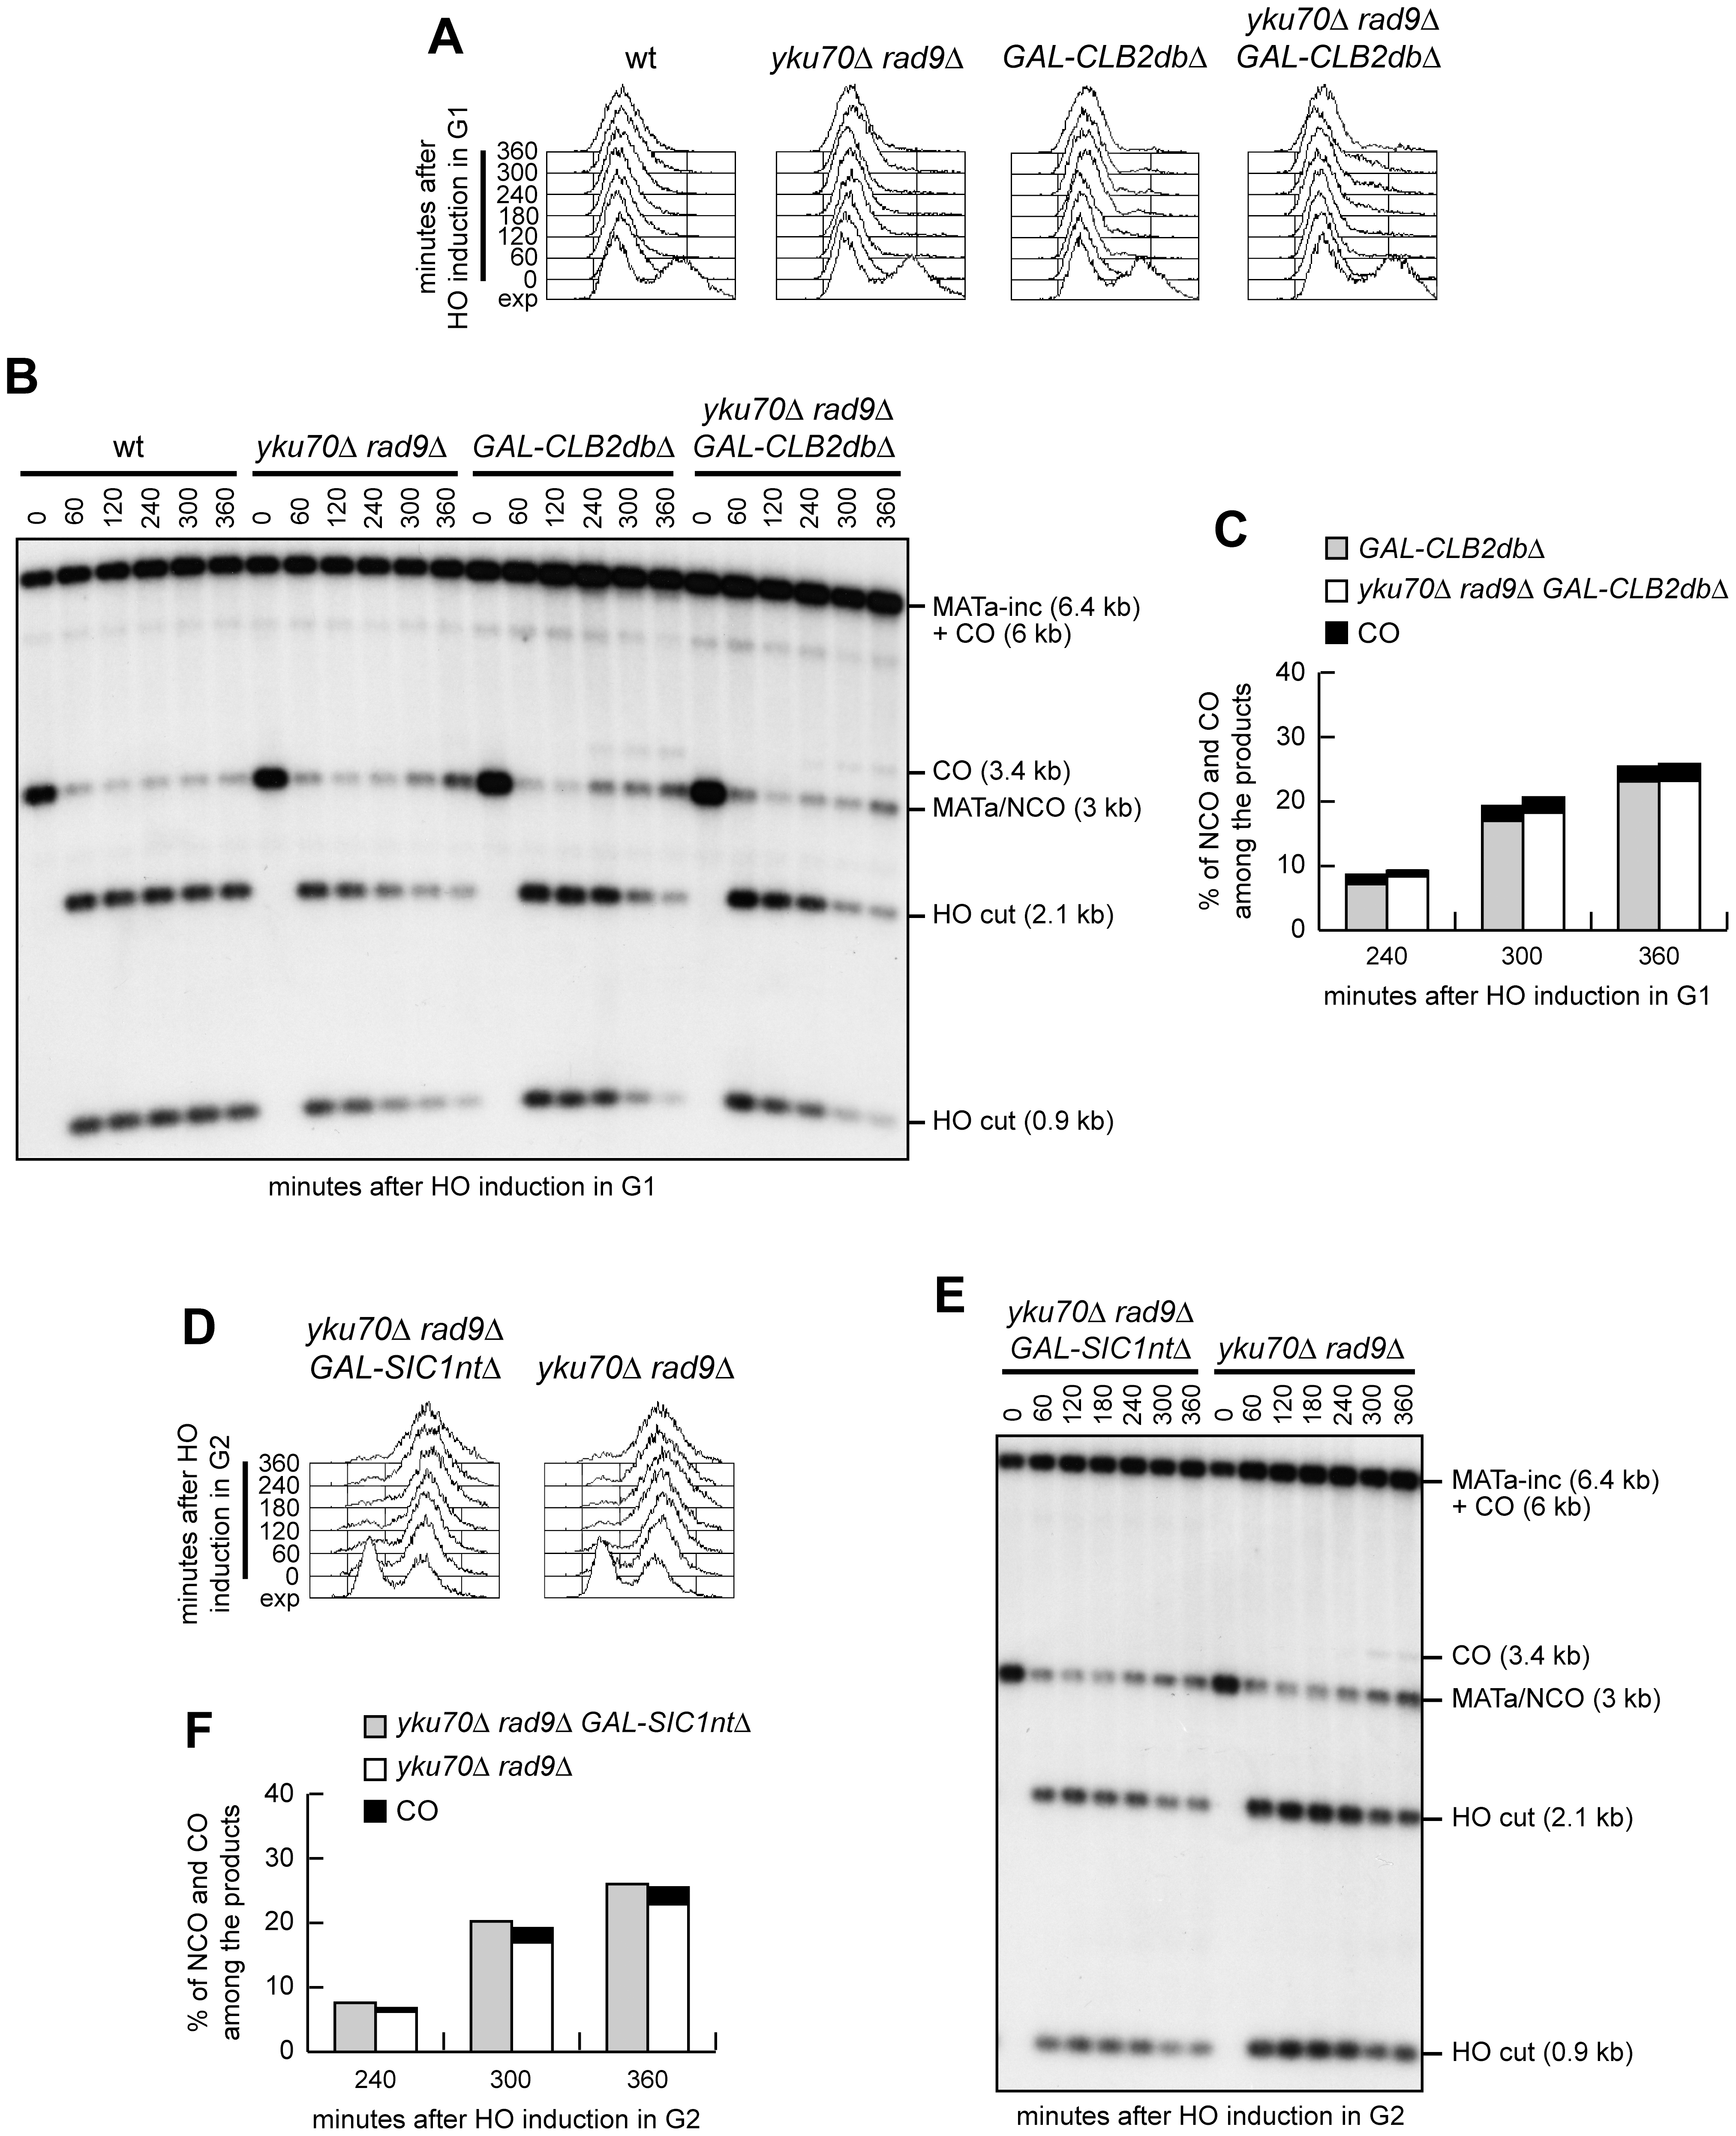 Ectopic Cdk1 activation allows crossovers in G1, whereas Cdk1 inhibition prevents crossover in G2.